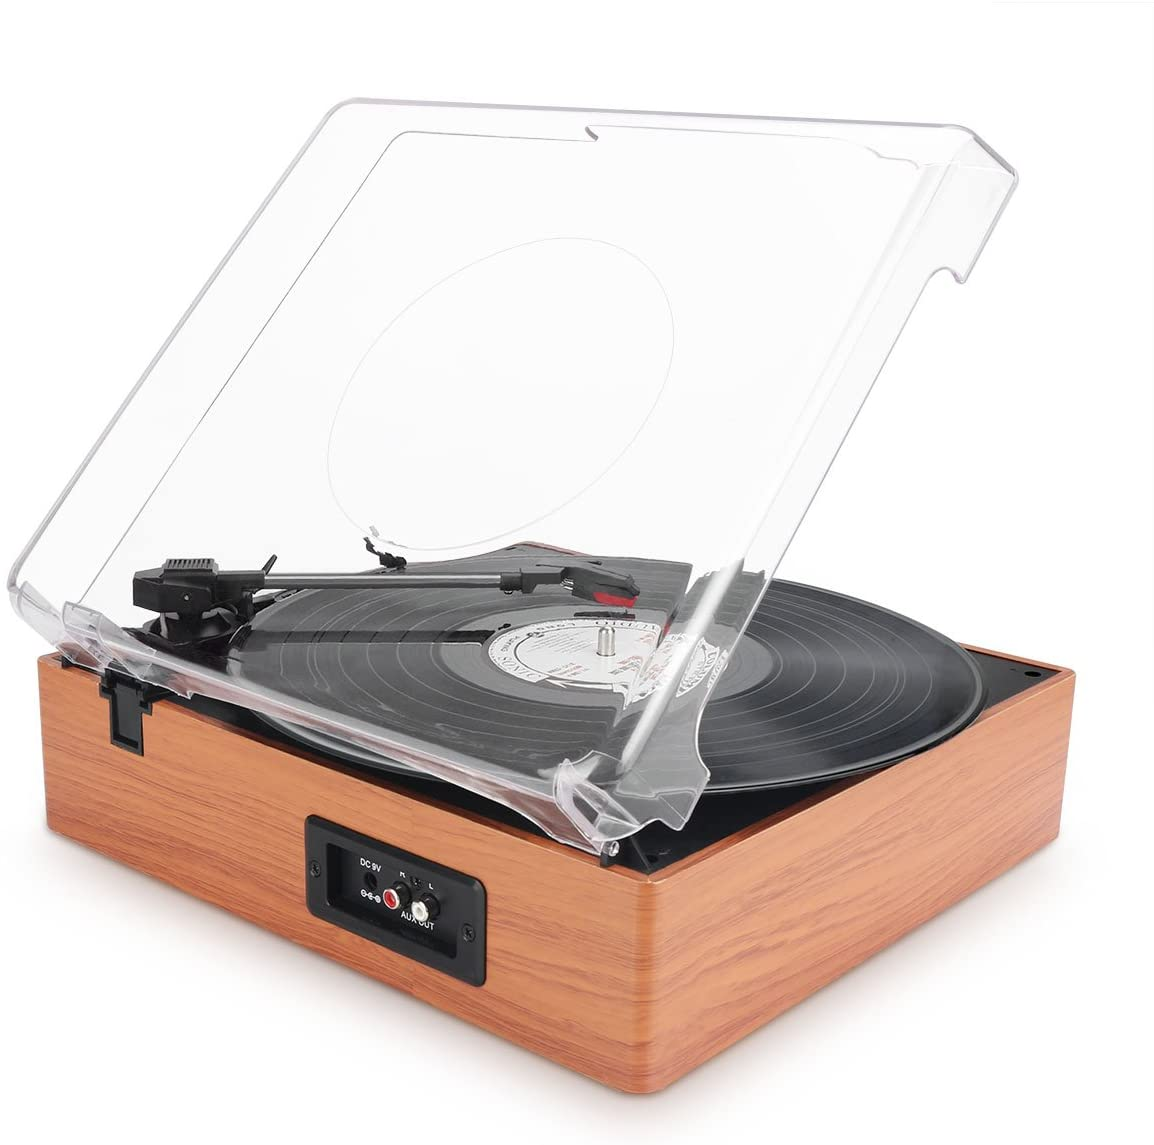 1byone Turntable 471NA-0003 Converting Ability